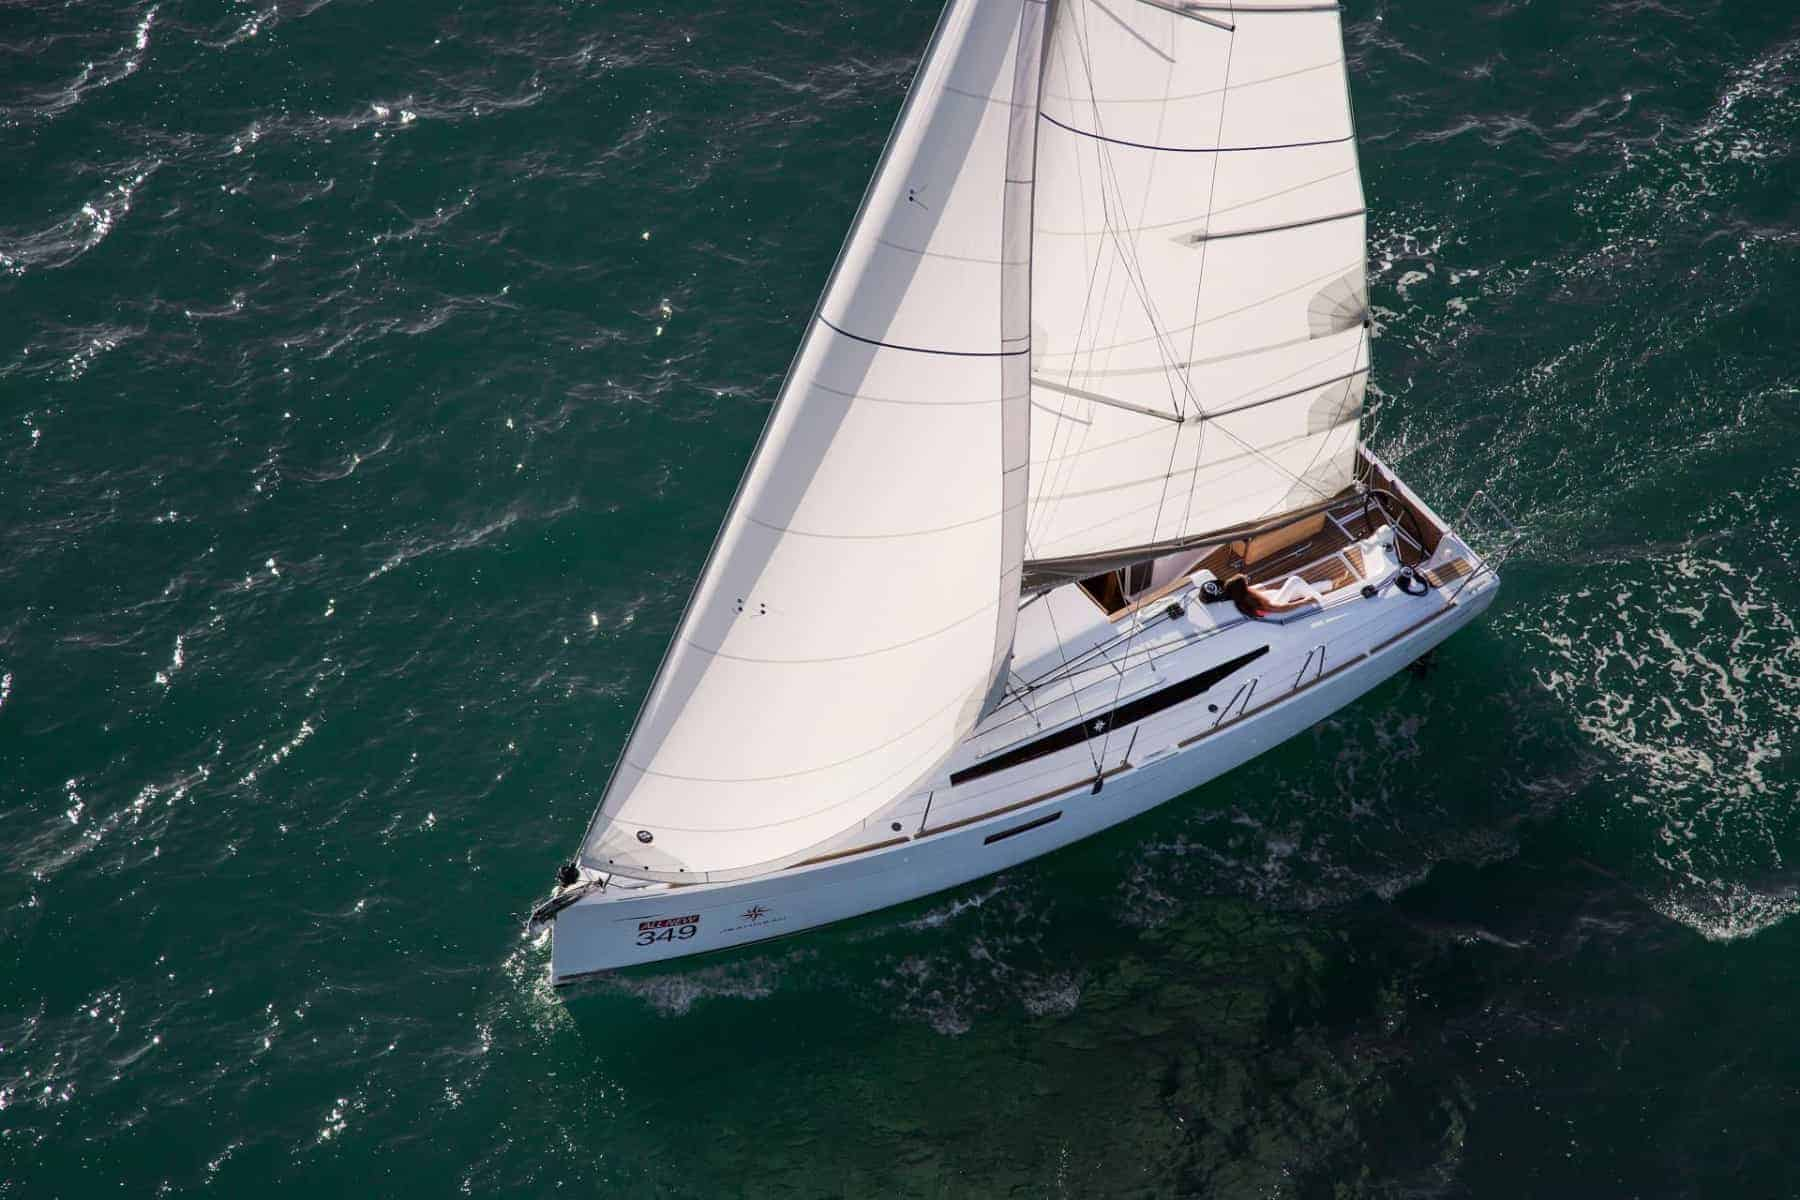 Jeanneau Sun Odyssey 349 with wind in its sail viewed from above